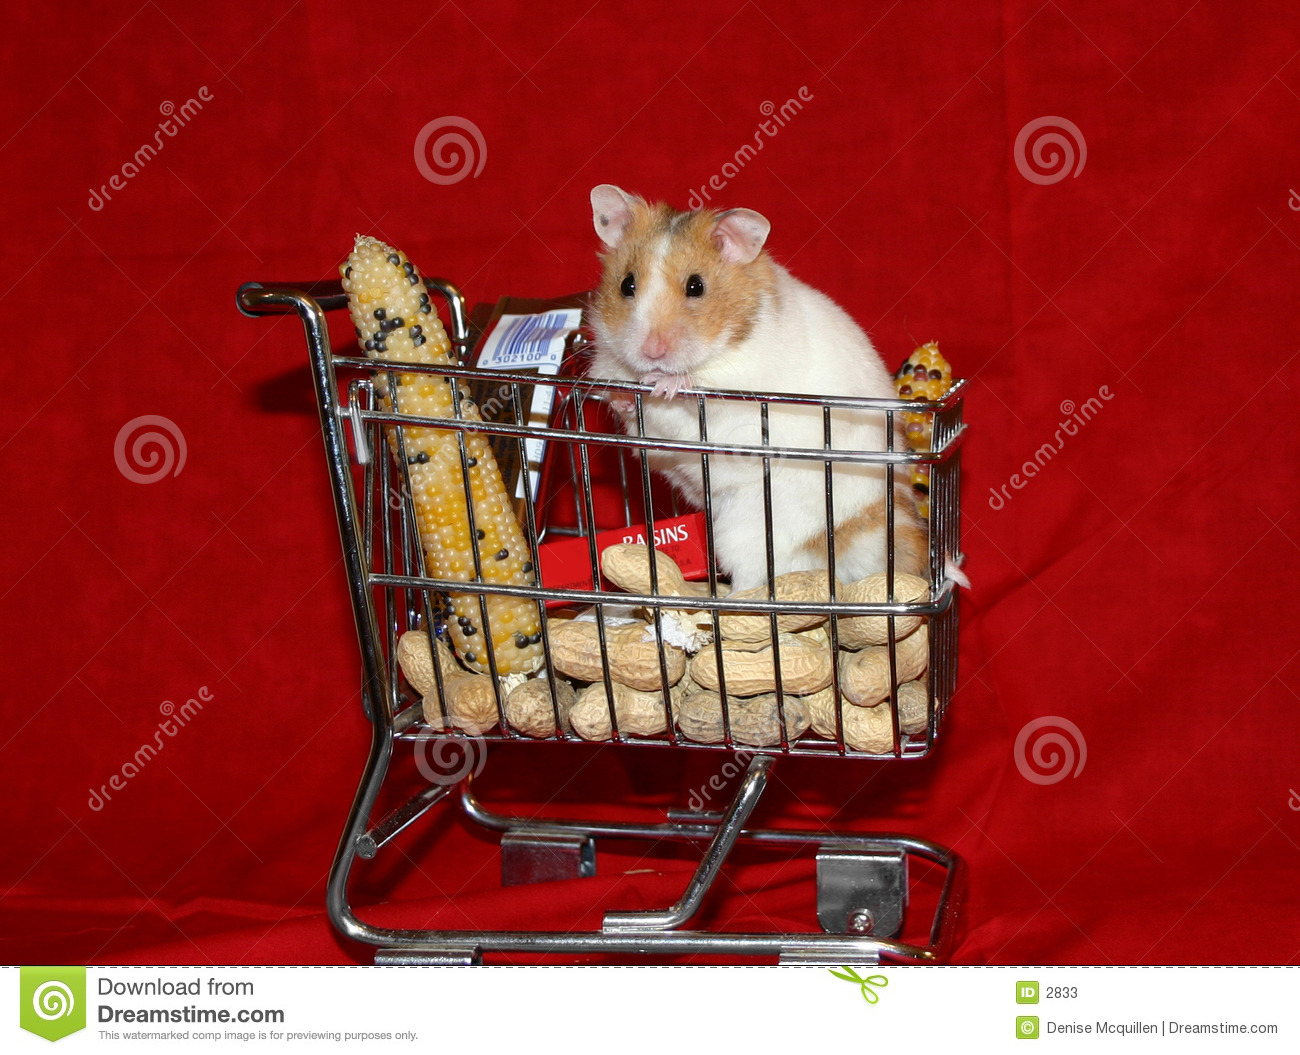 Hamster goes shopping 1